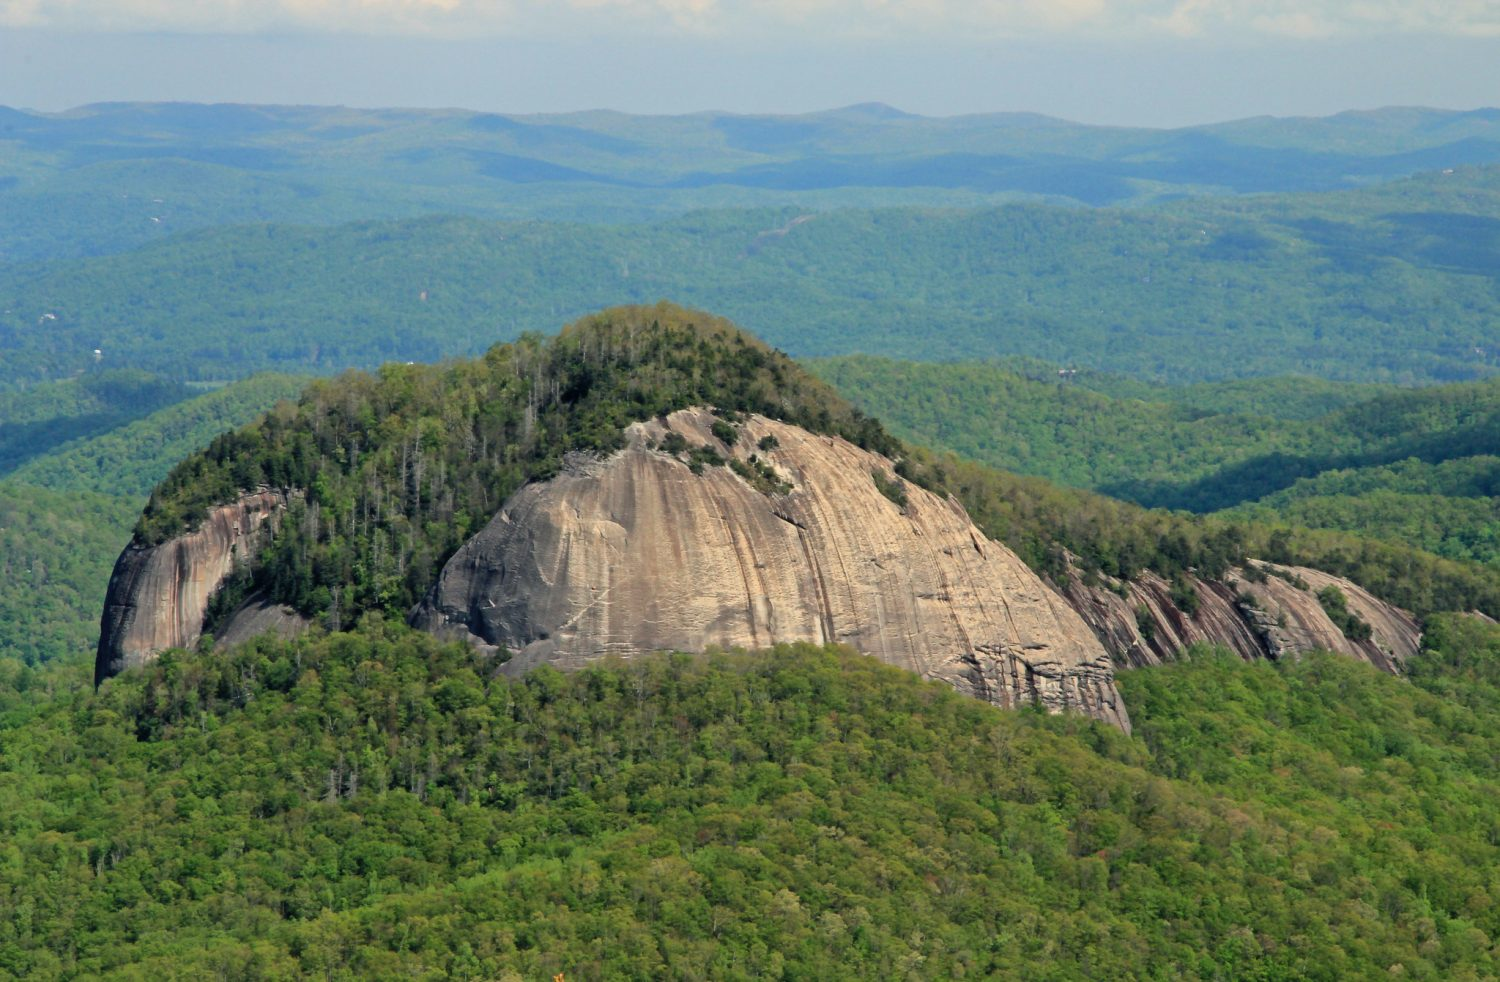 A photo of the Looking Glass Rock in the Pisgah National Forest, North Carolina